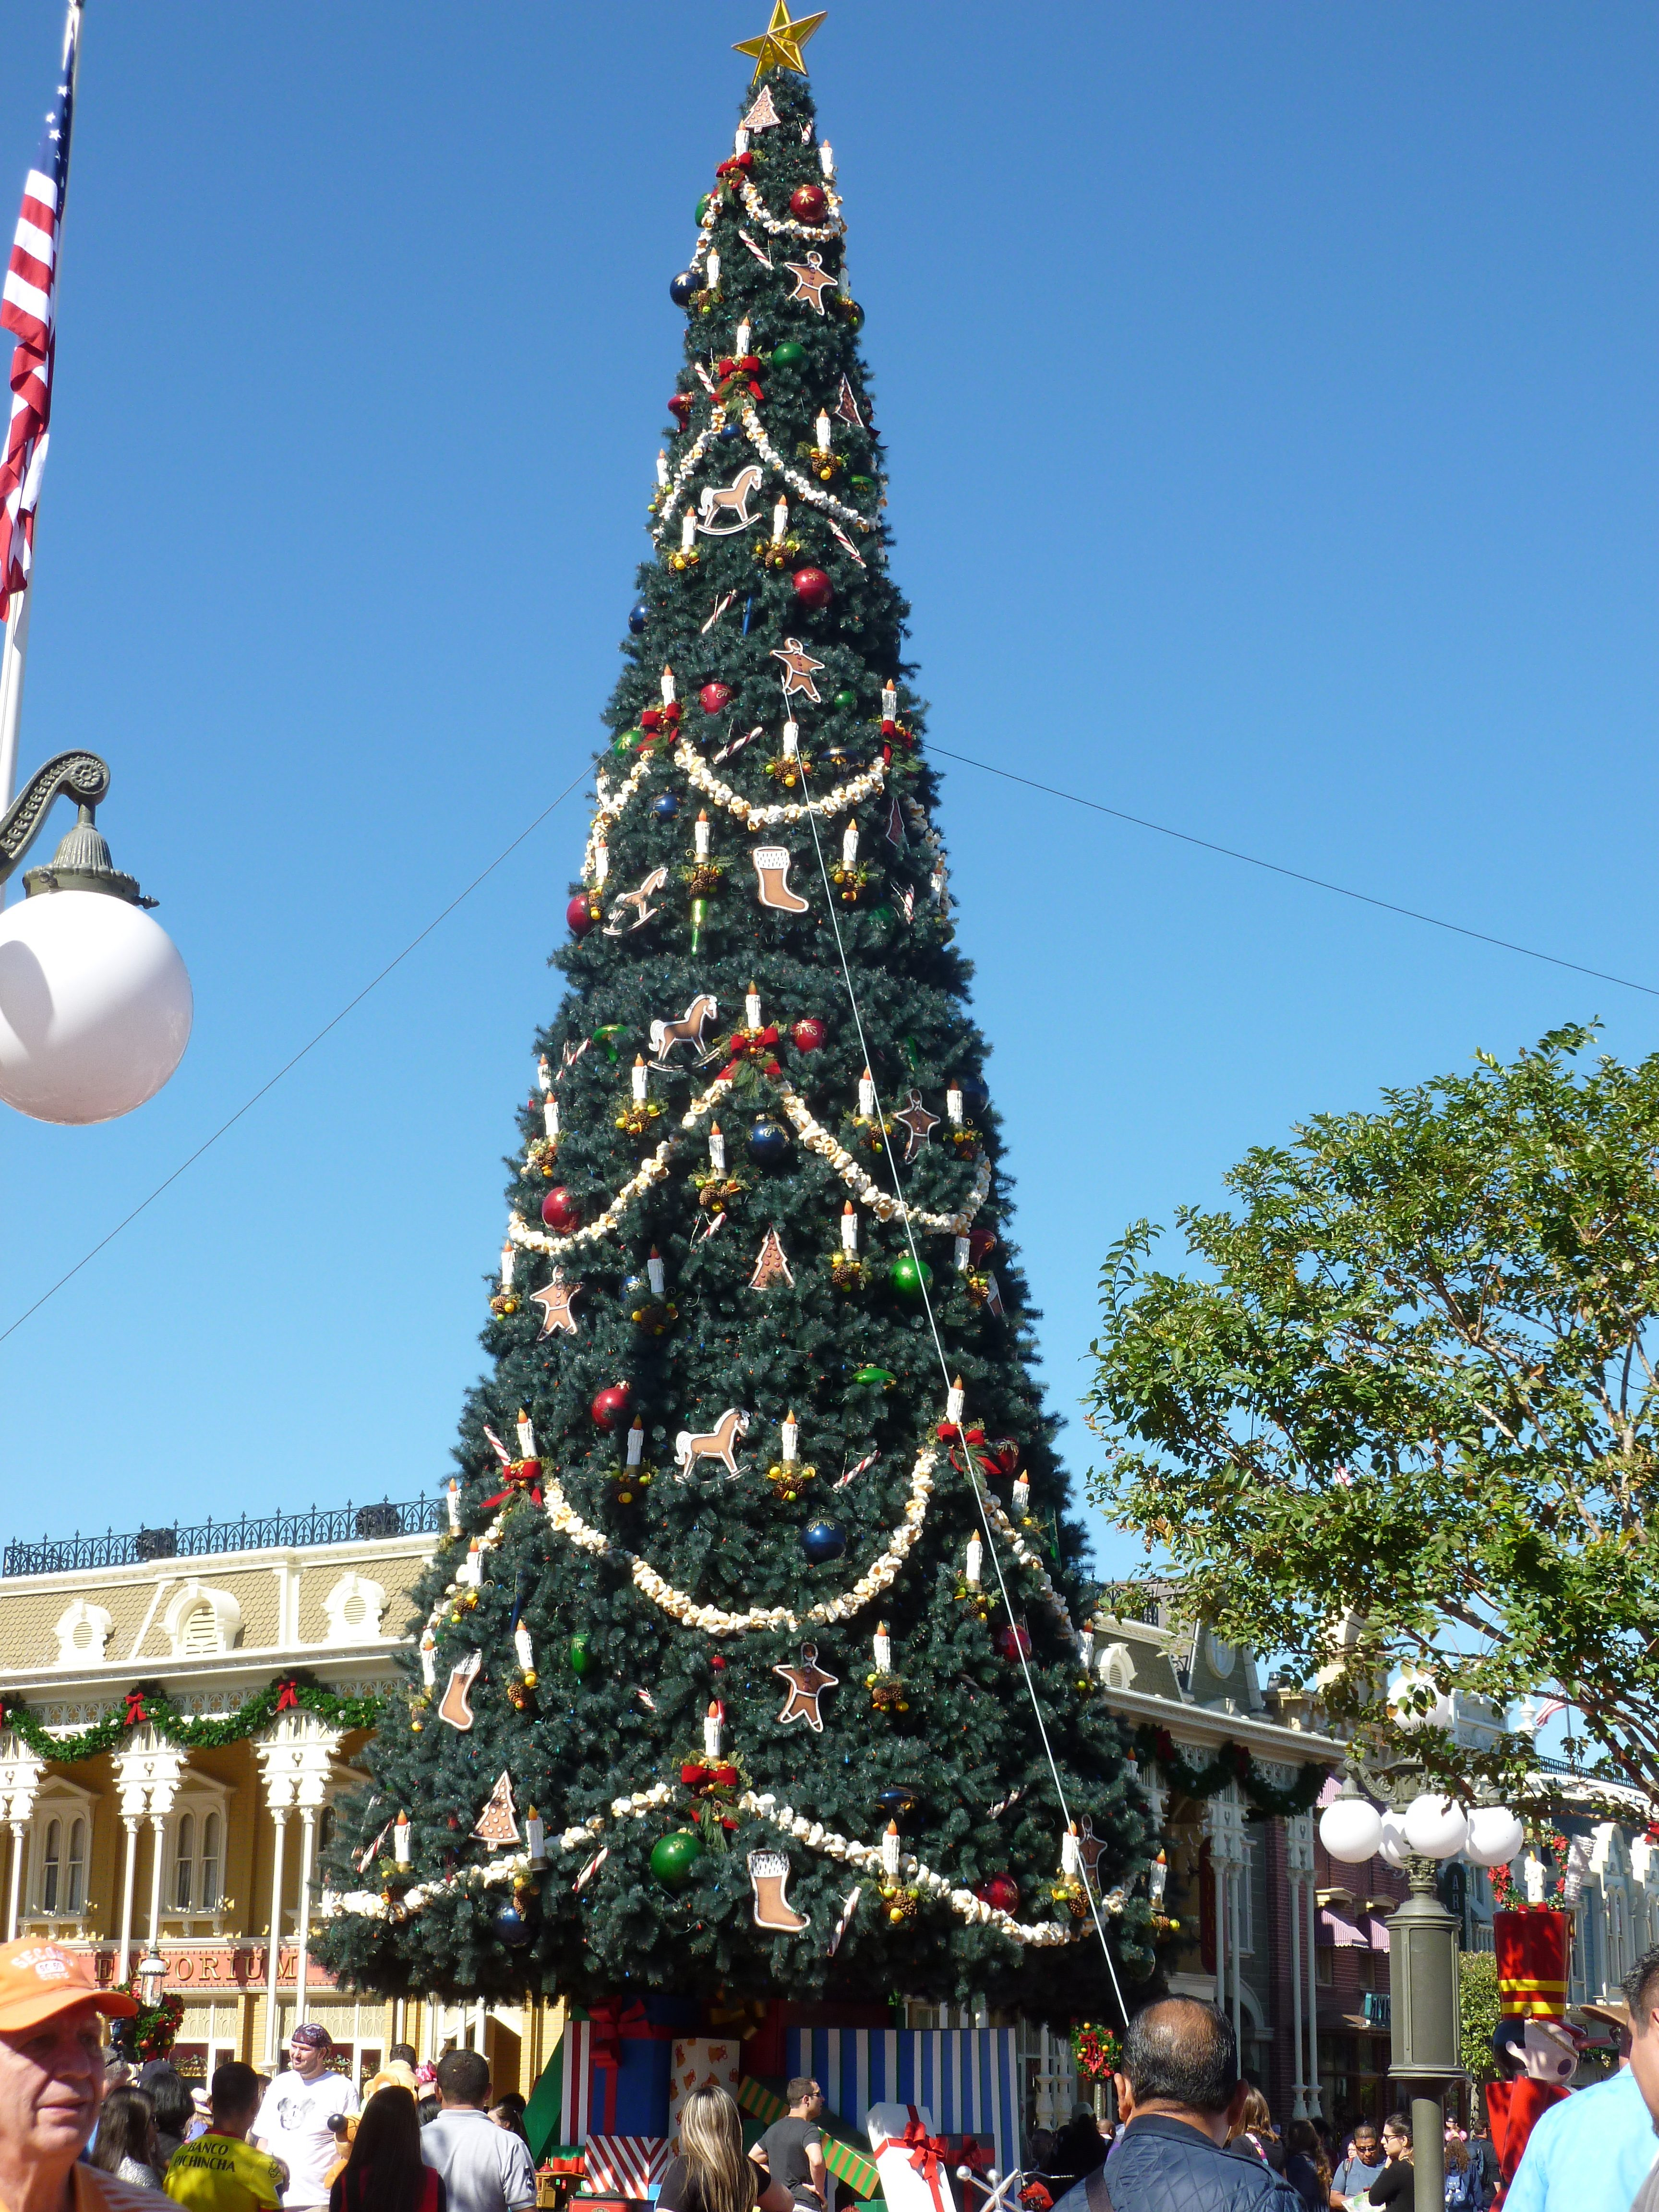 Christmas on Main Street at Magic Kingdom, DisneyWorld, Orlando, Florida